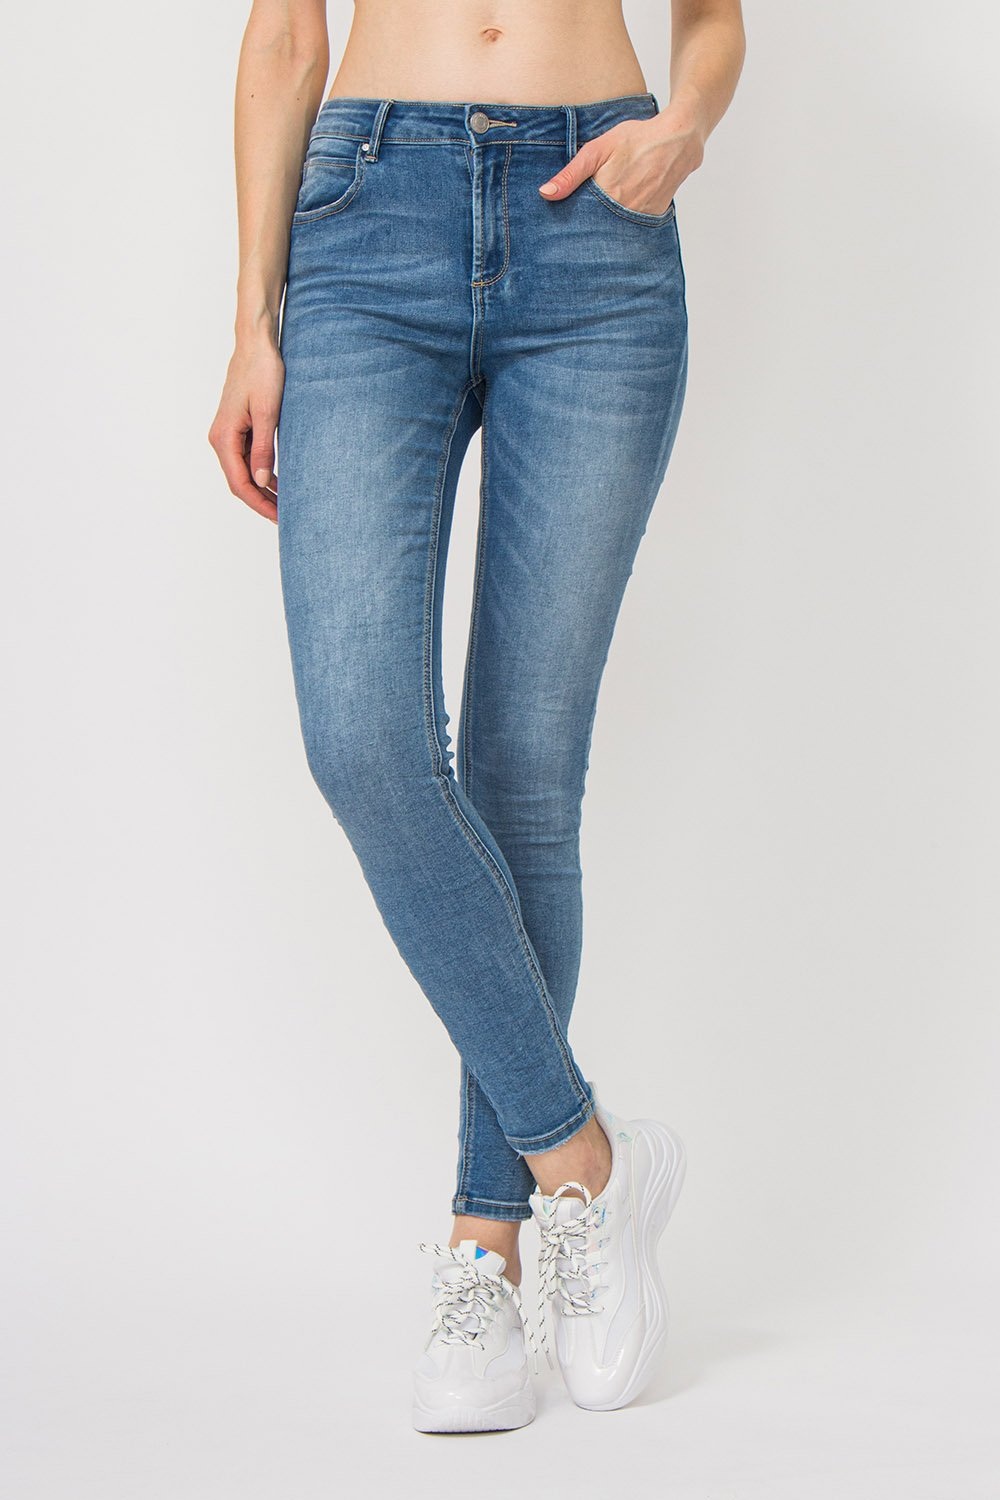 Jeans Hanna - The Fashionboutique - Colloseum